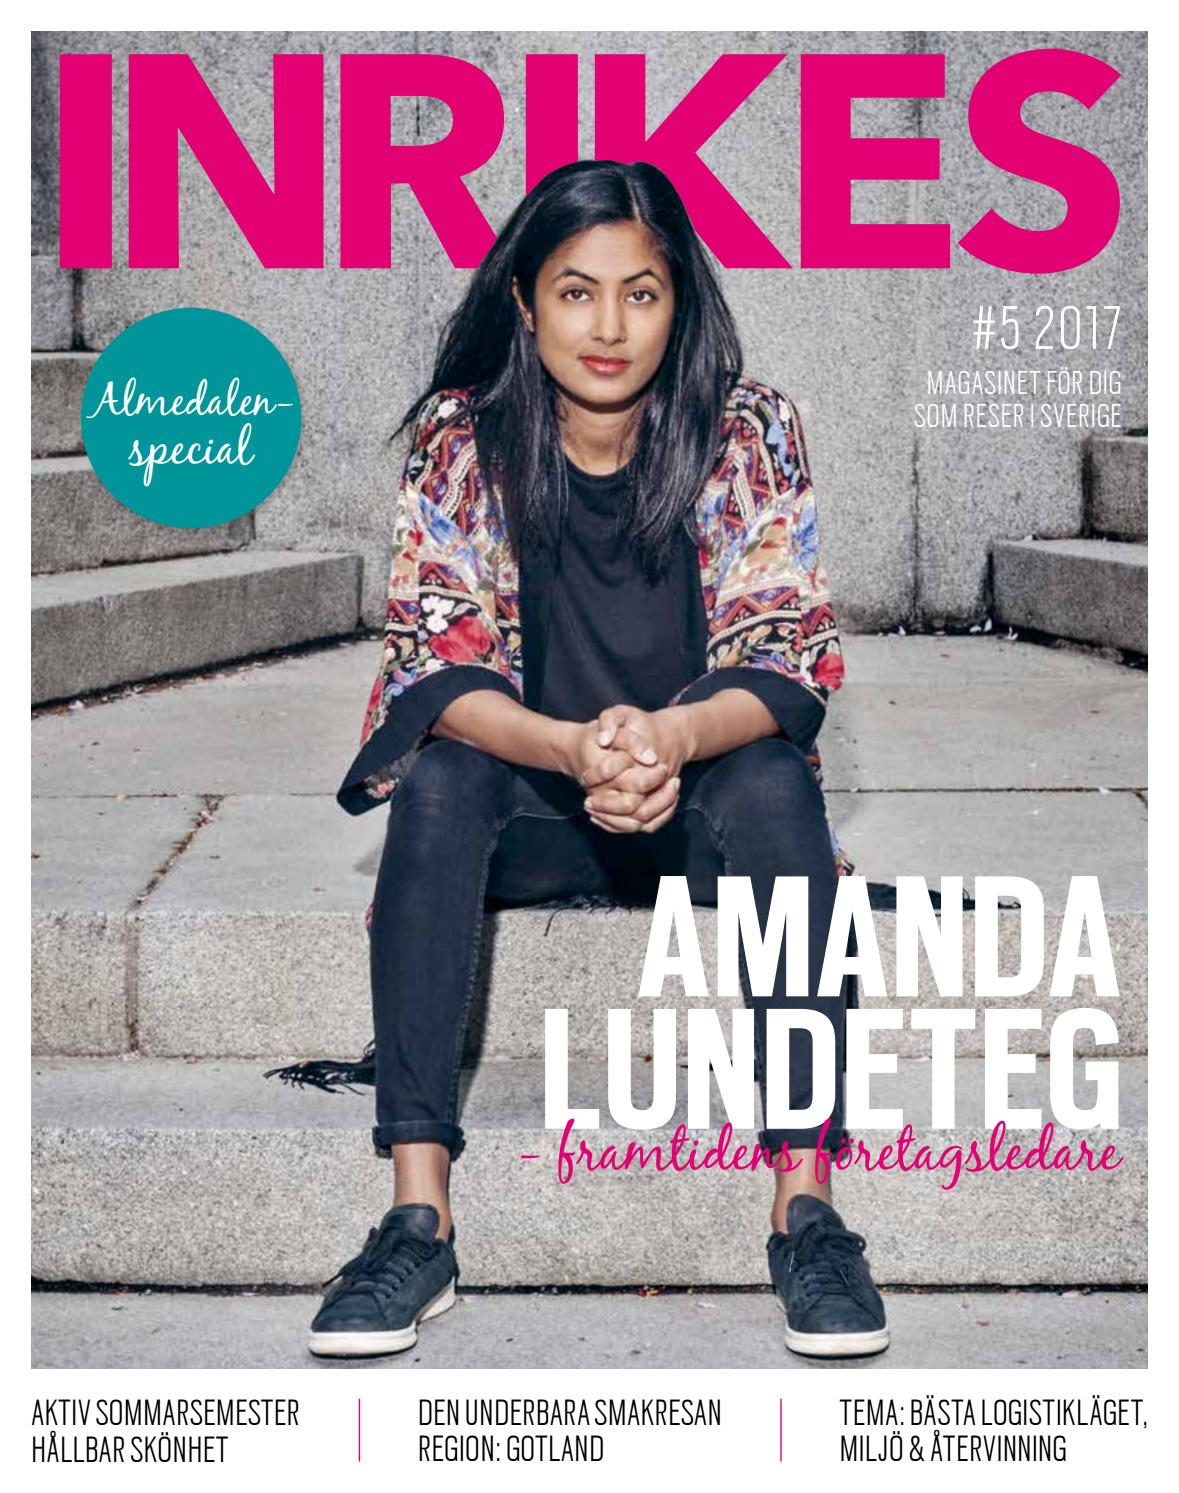 eca5205874d5 Inrikes 5 2017 by INRIKES Magasin - issuu